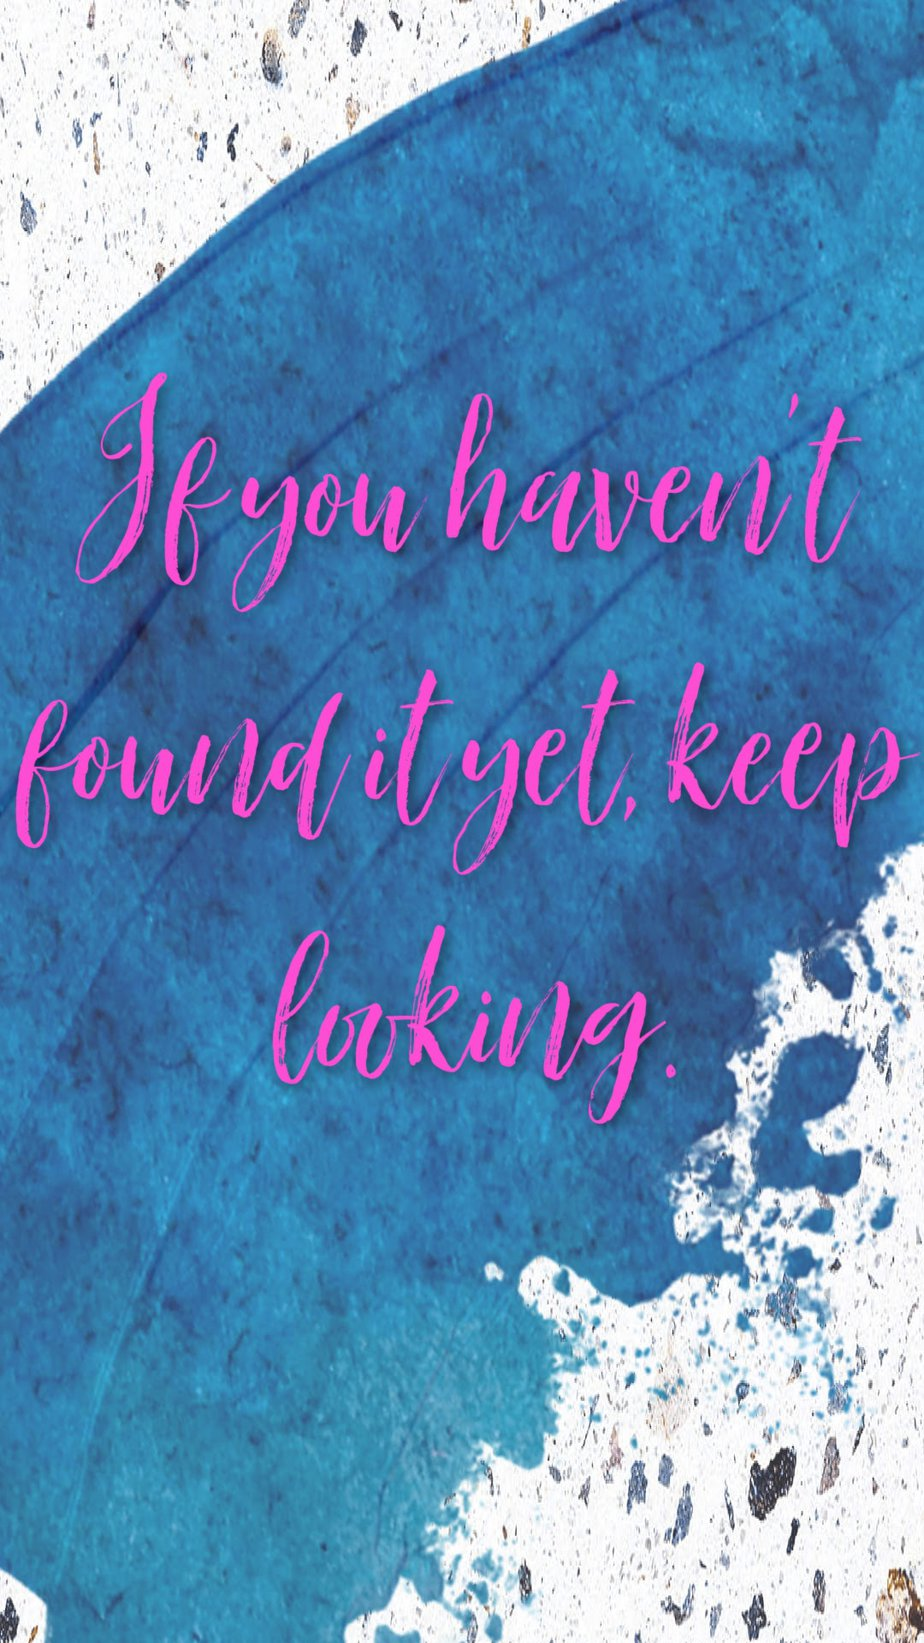 Best Aesthetic Phone Wallpaper Quotes About Finding If you haven't found it yet, keep looking